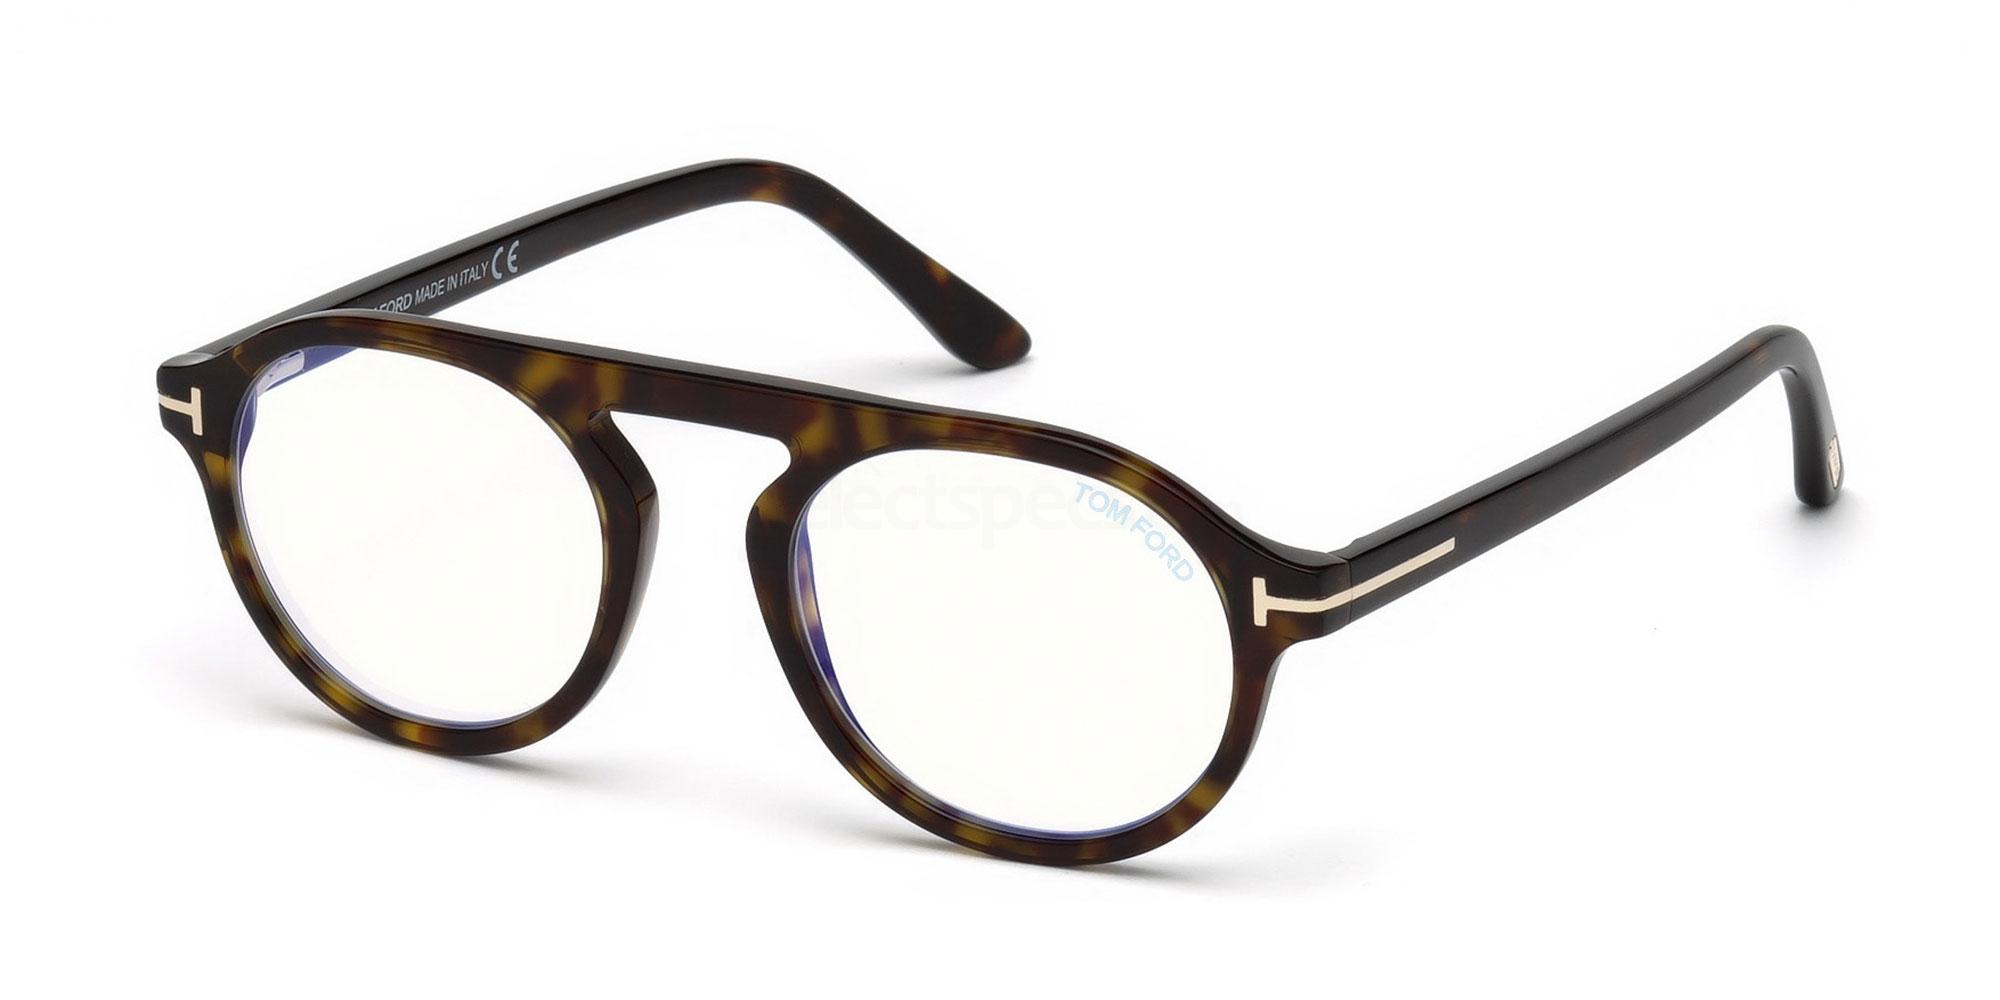 052 FT5534-B Glasses, Tom Ford